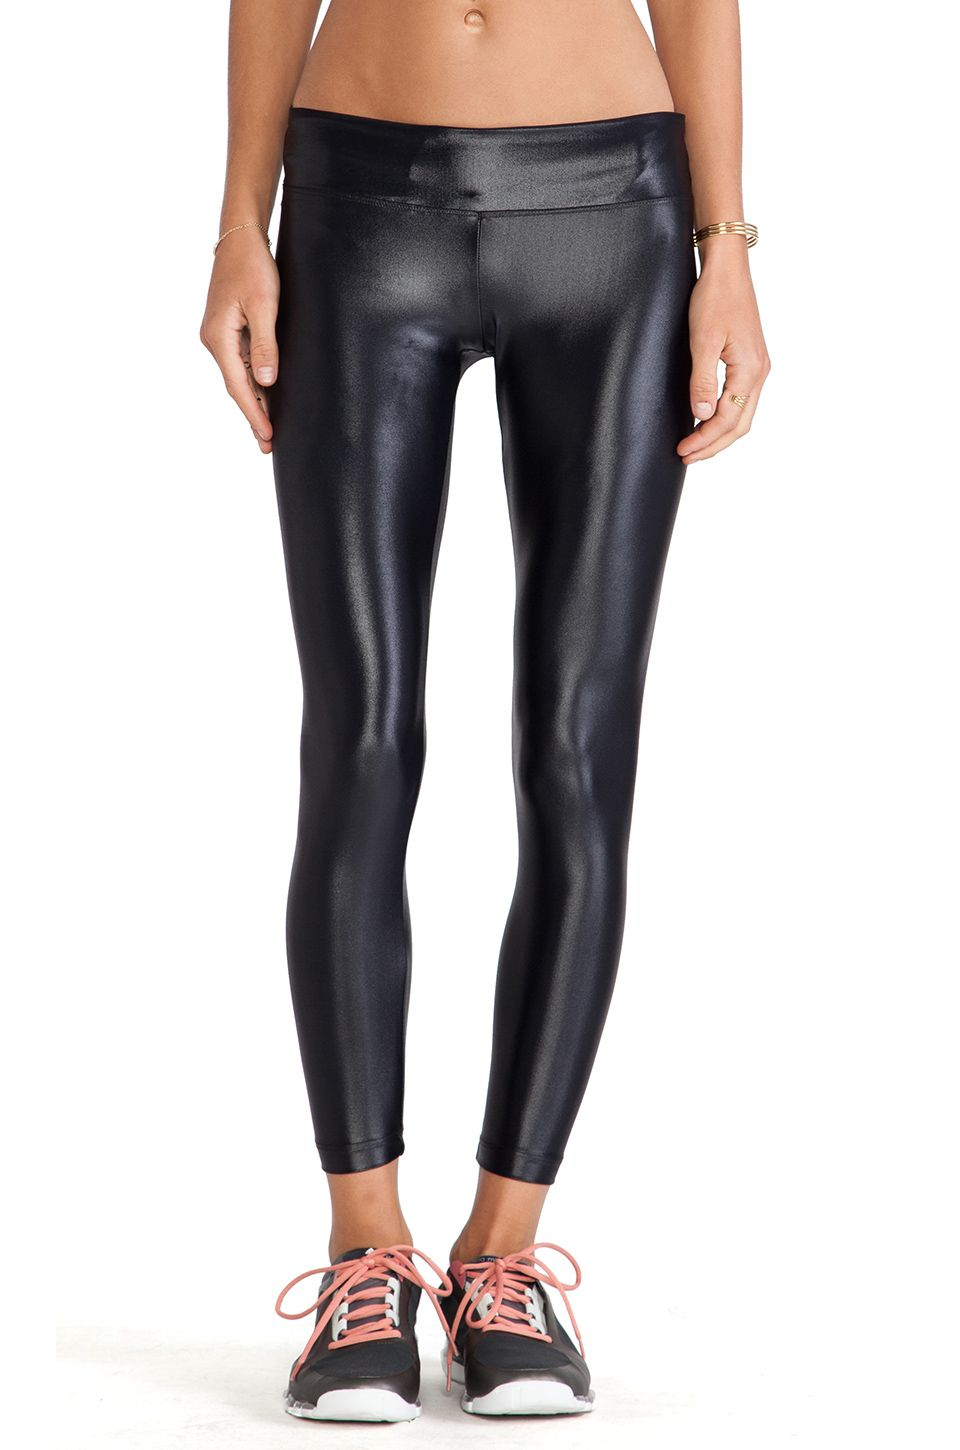 REVOLVEclothing love these shiny workout pants!  1fd8c71e2c6d